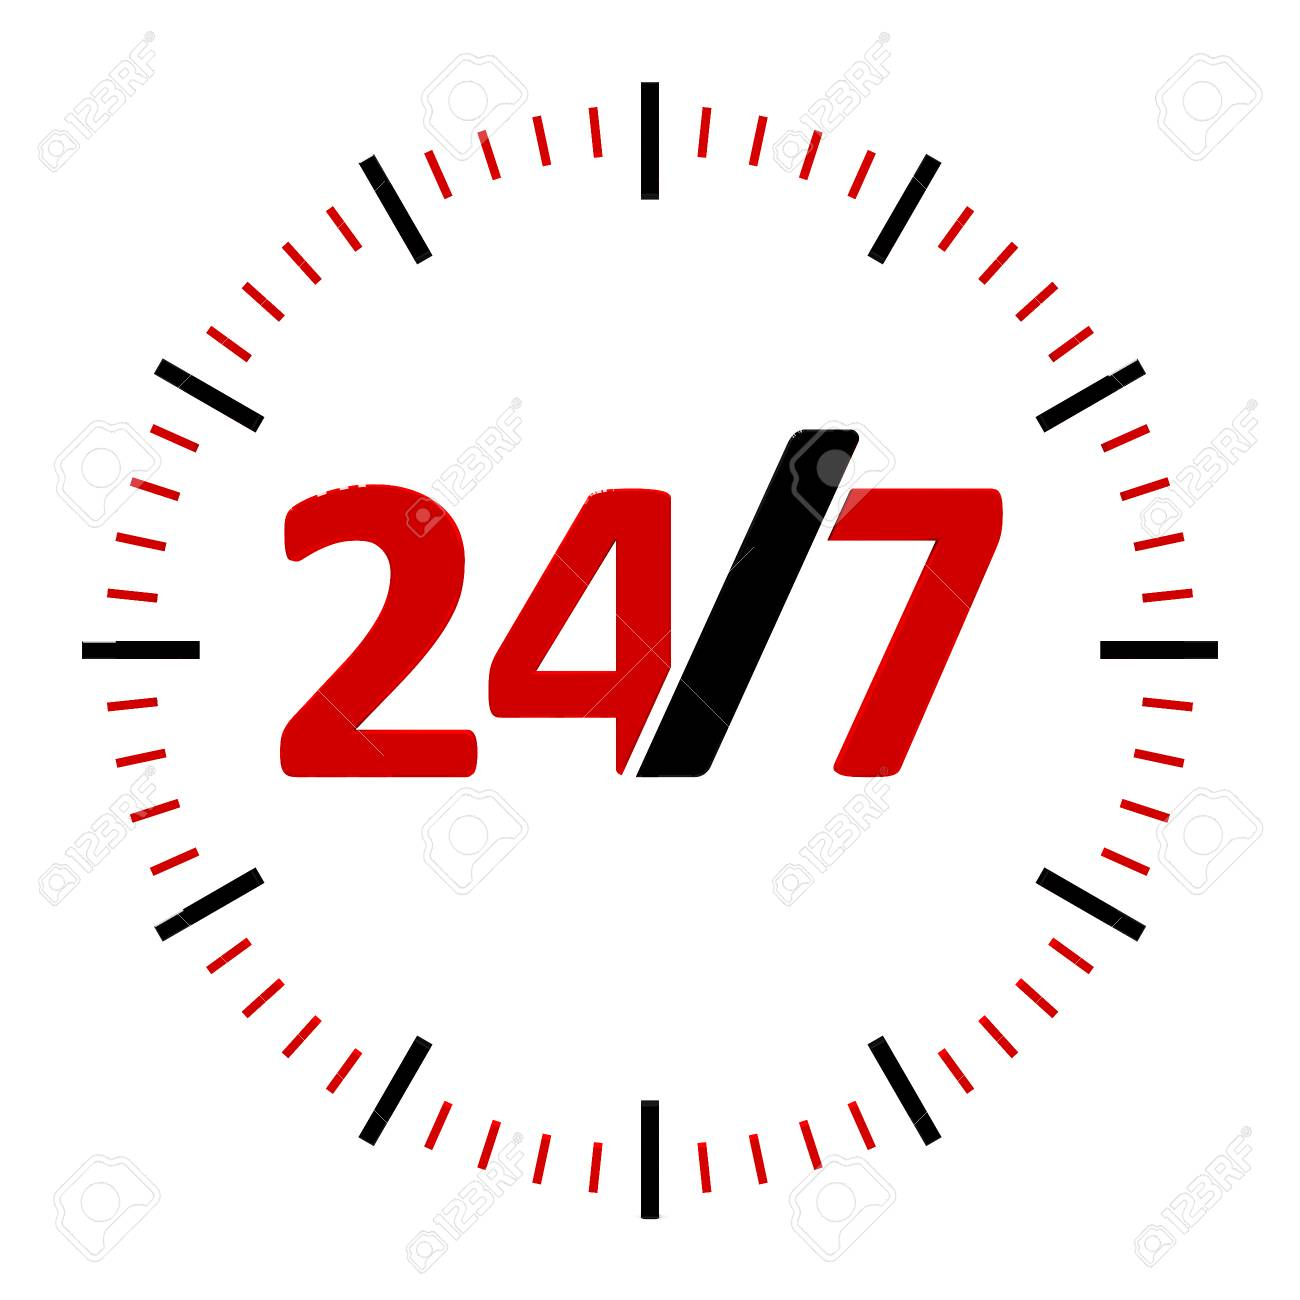 Round-the-clock On White Background Represents 24/7 Service,.. Stock Photo,  Picture And Royalty Free Image. Image 89691592.